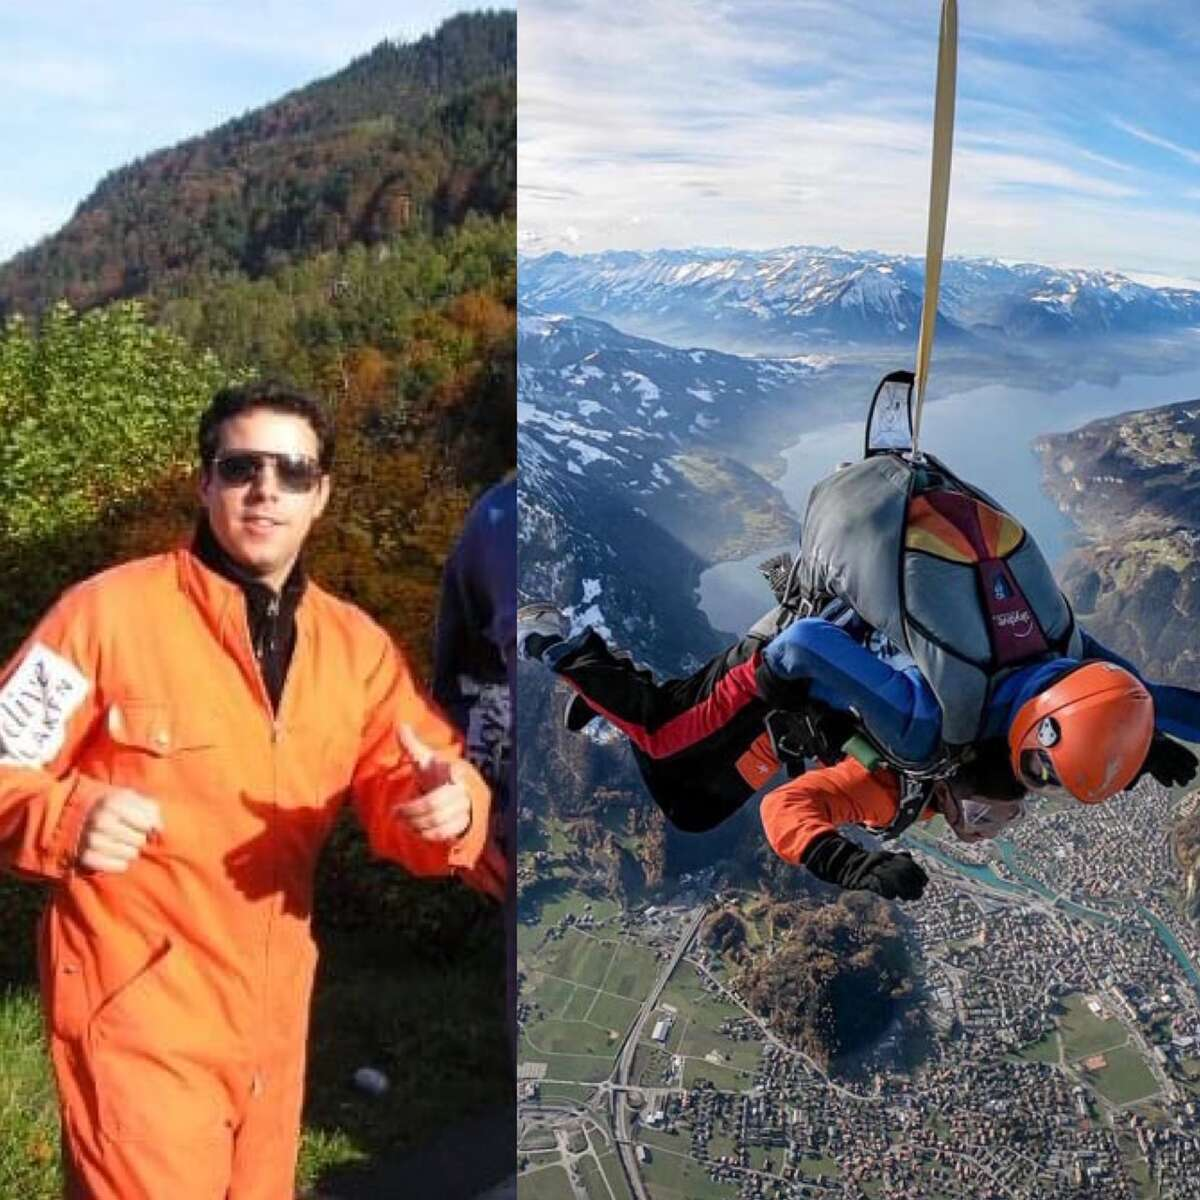 1. I have a major fear of heights, but went skydiving out of a helicopter at 15k feet in the Swiss Alps. I still don't like standing close to two-story railings now.